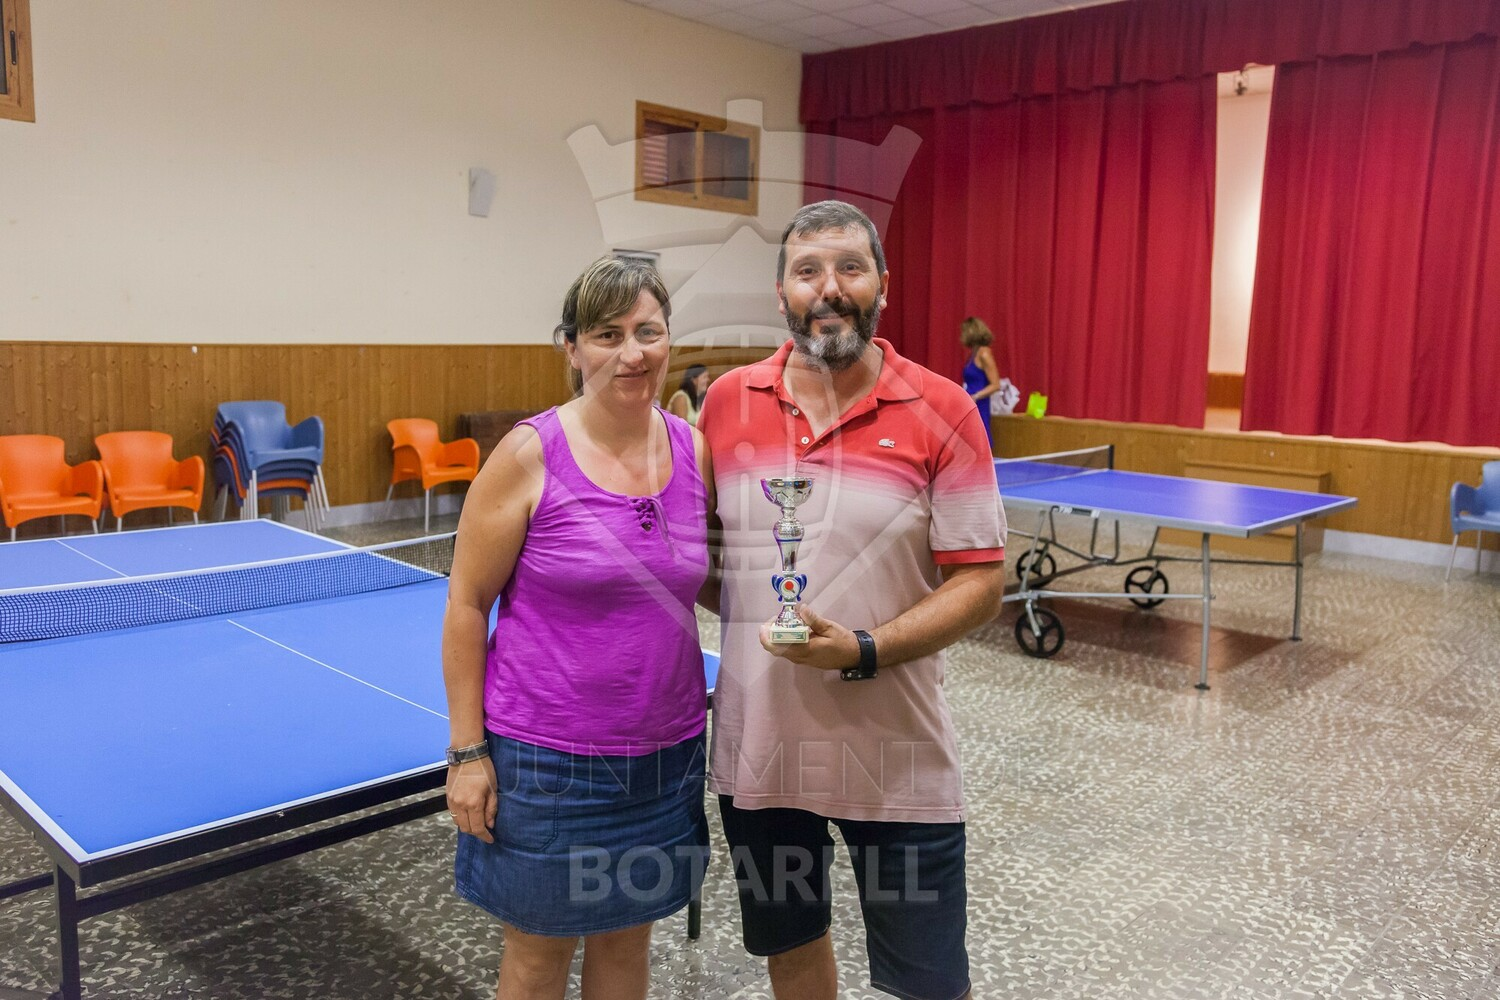 FMB2017_0813b_TennisTaula_009.jpg